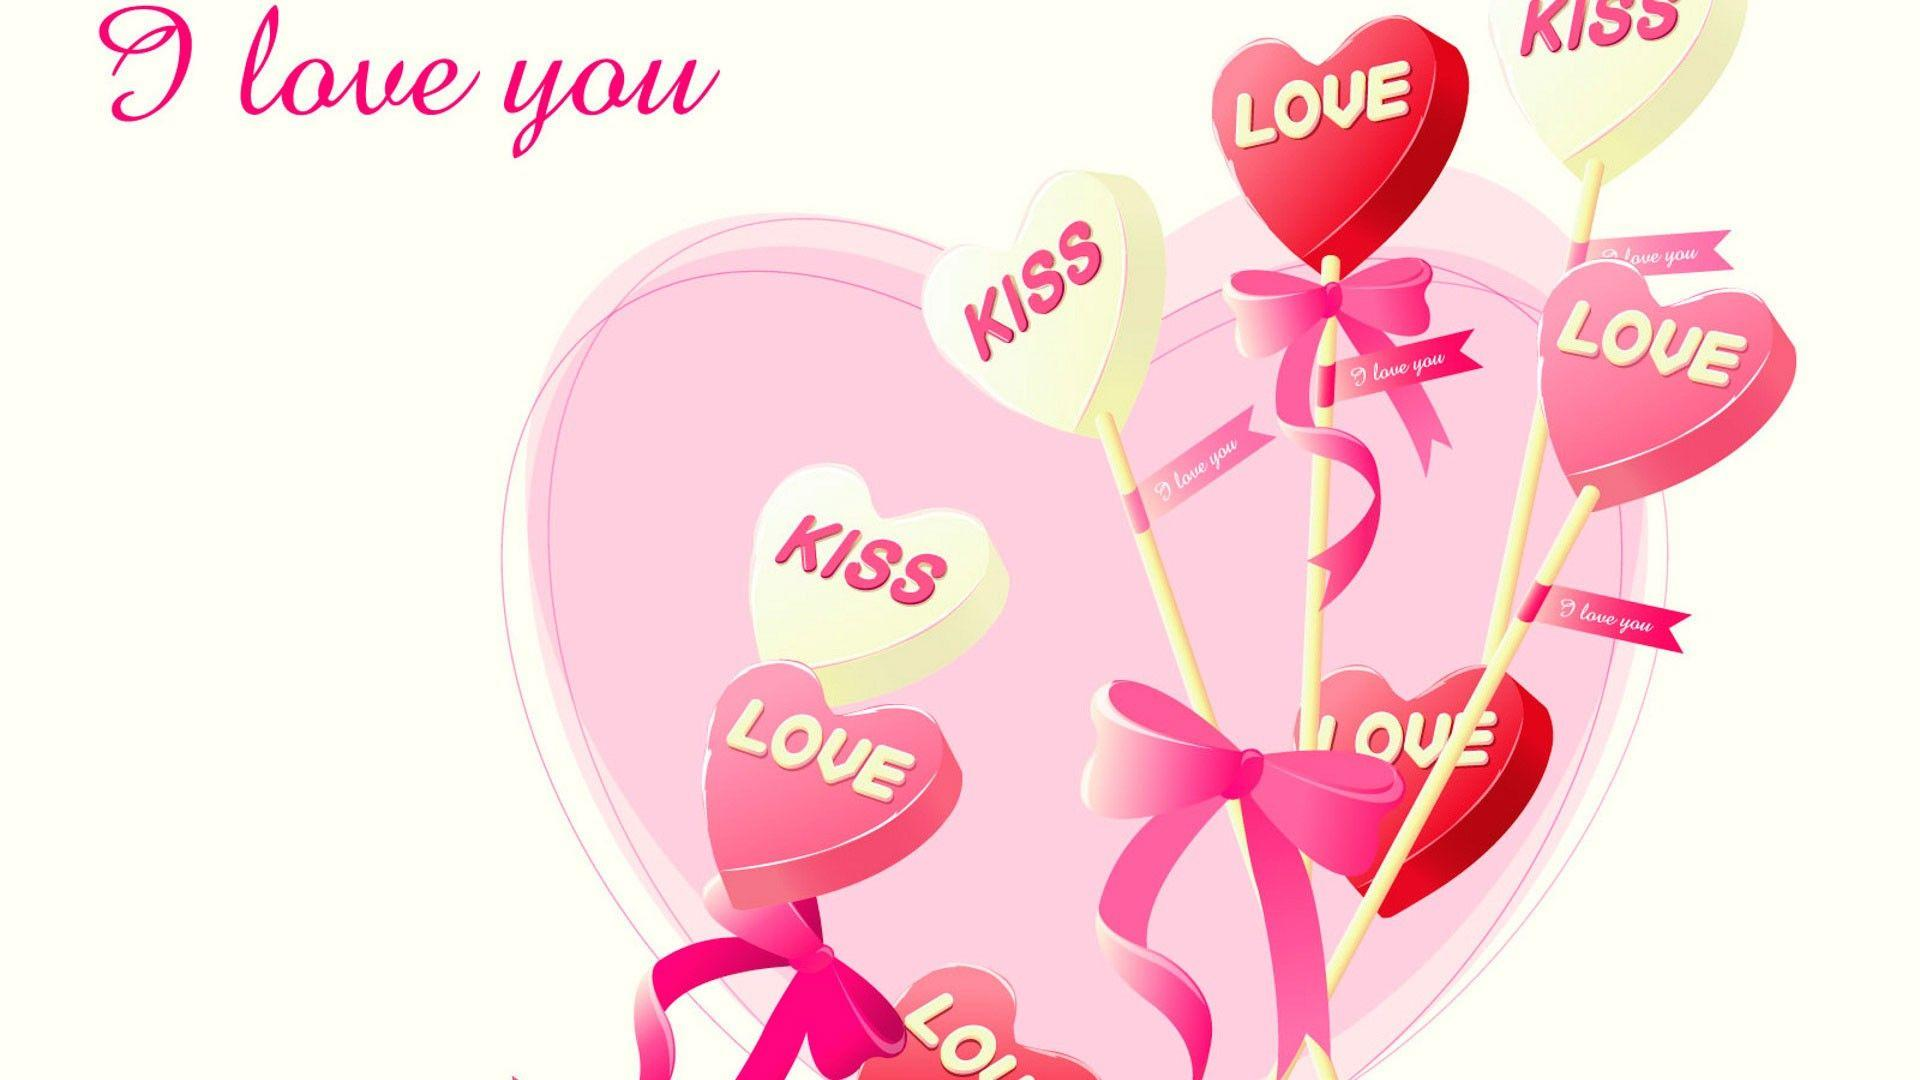 i love you images download kiss